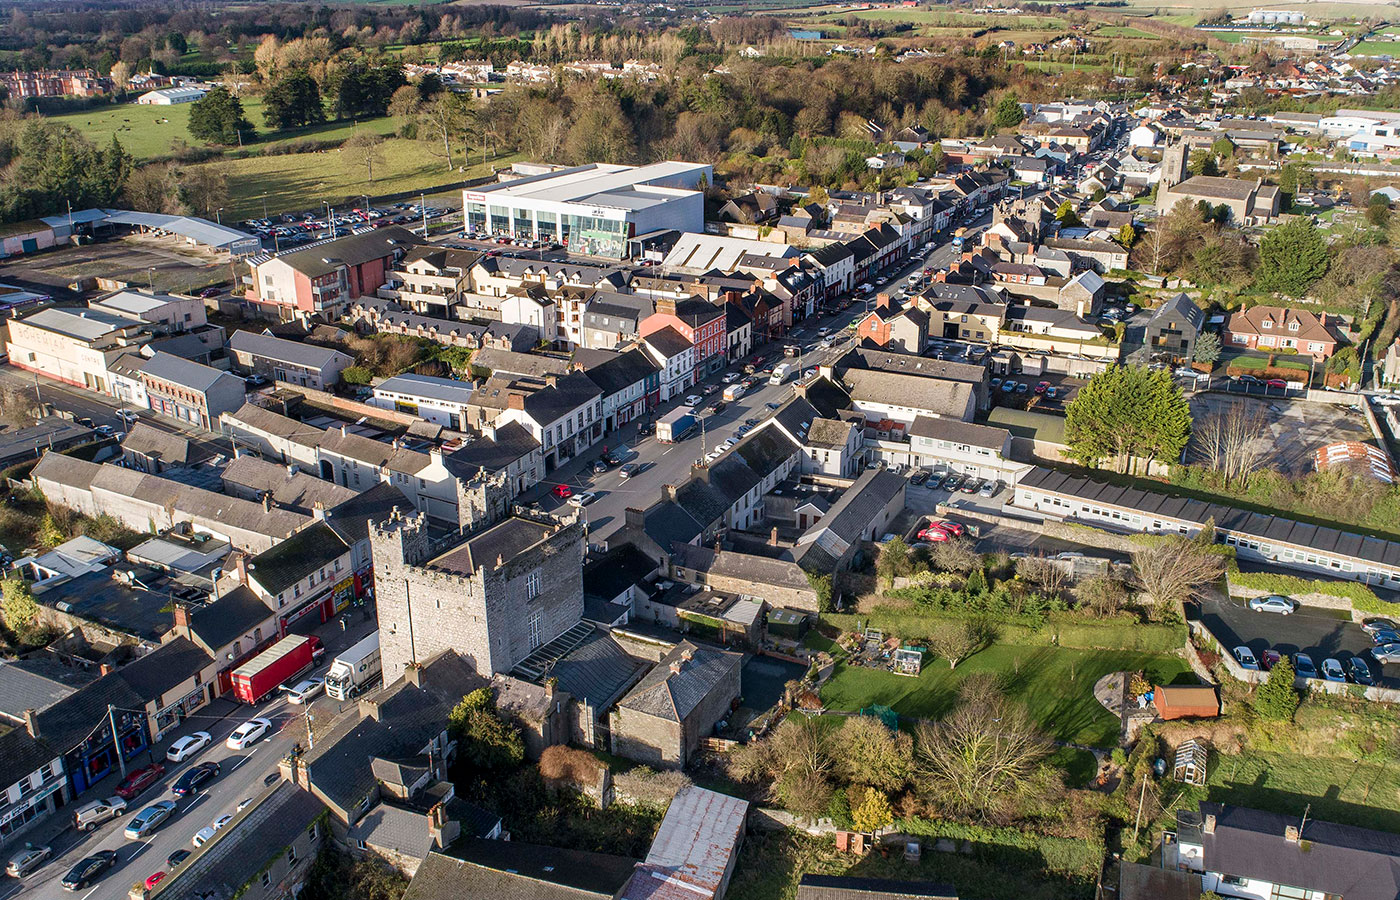 Aerial View of Ardee